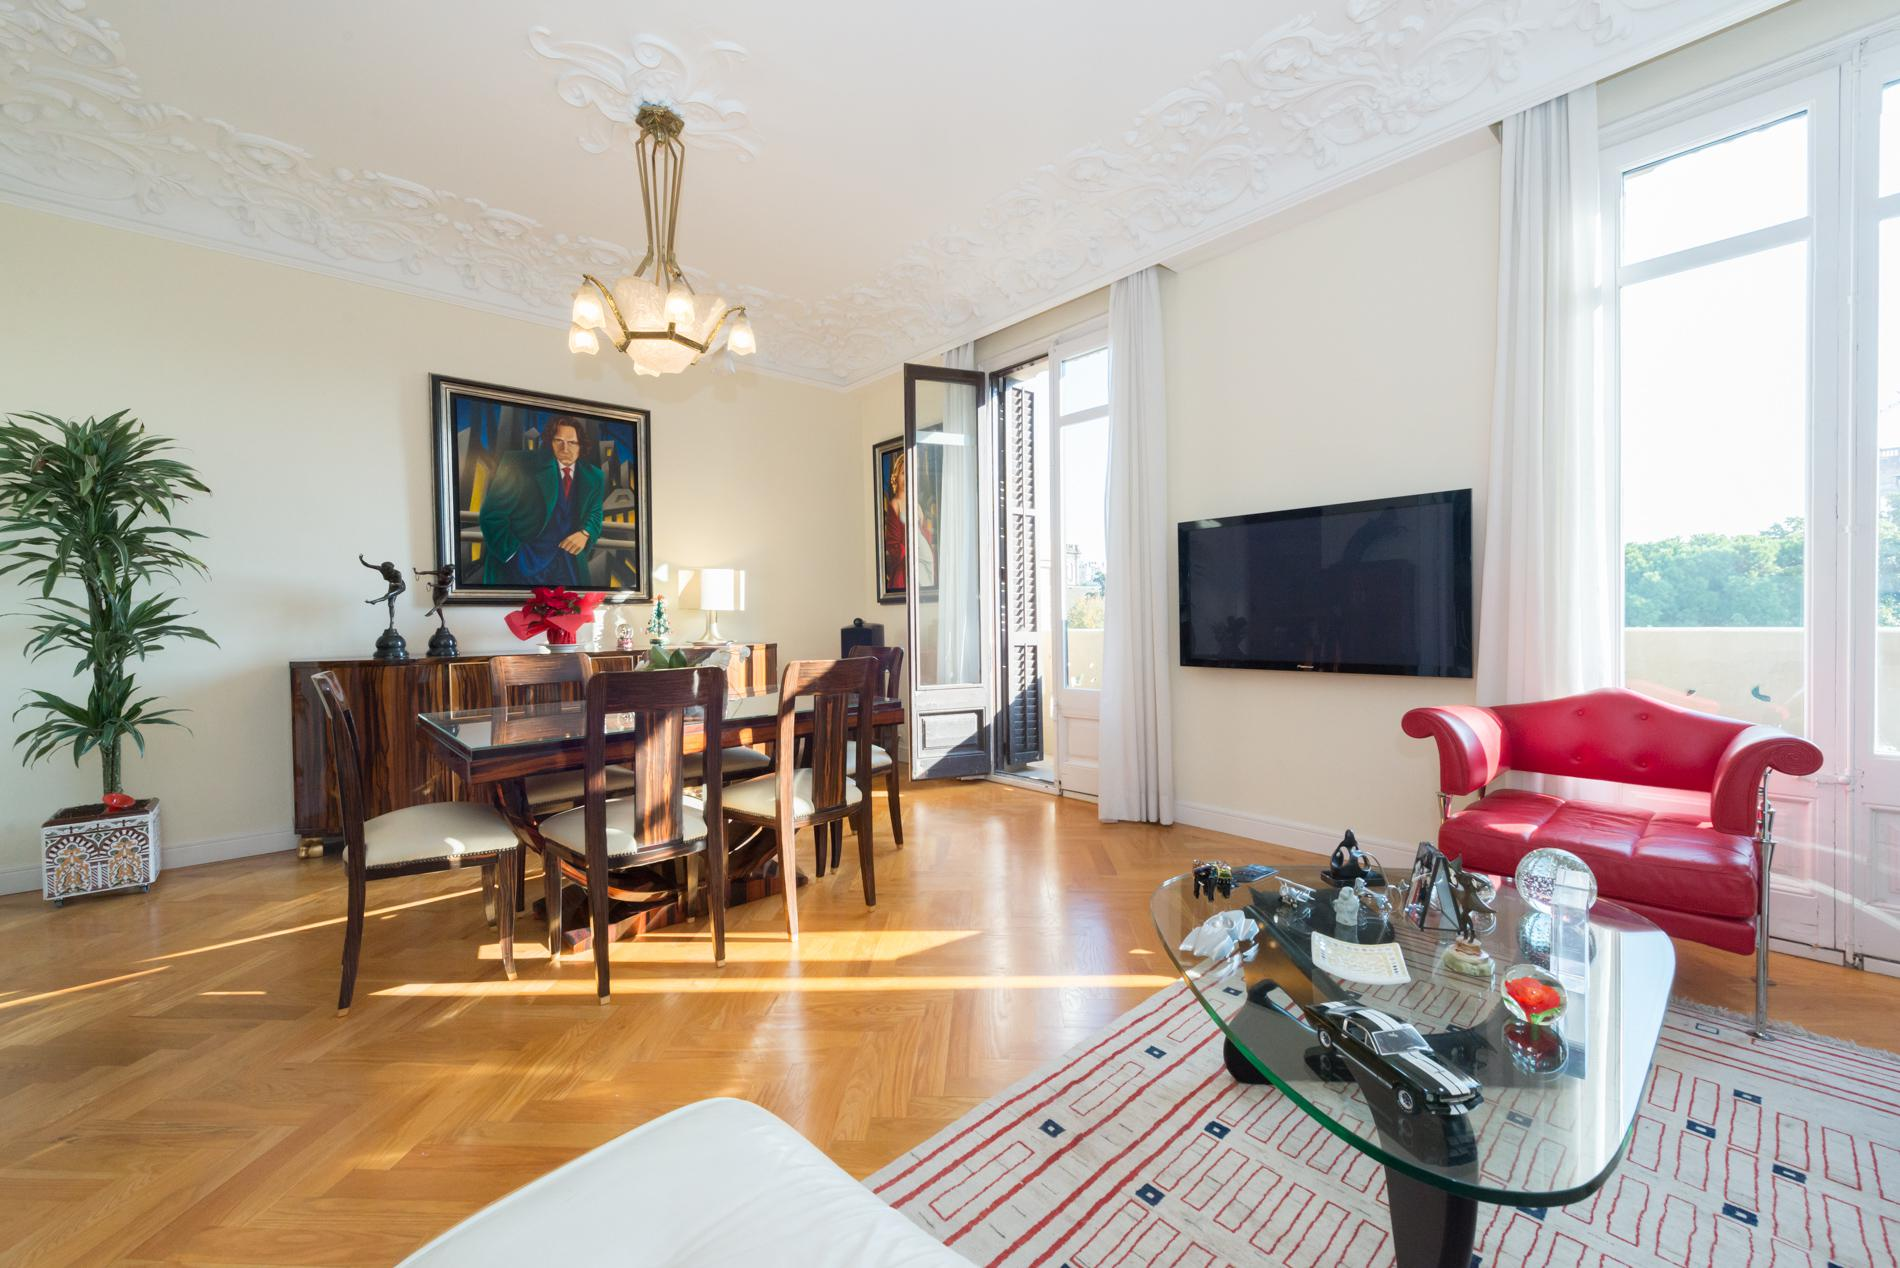 174066 Apartment for sale in Eixample, Old Left Eixample 2